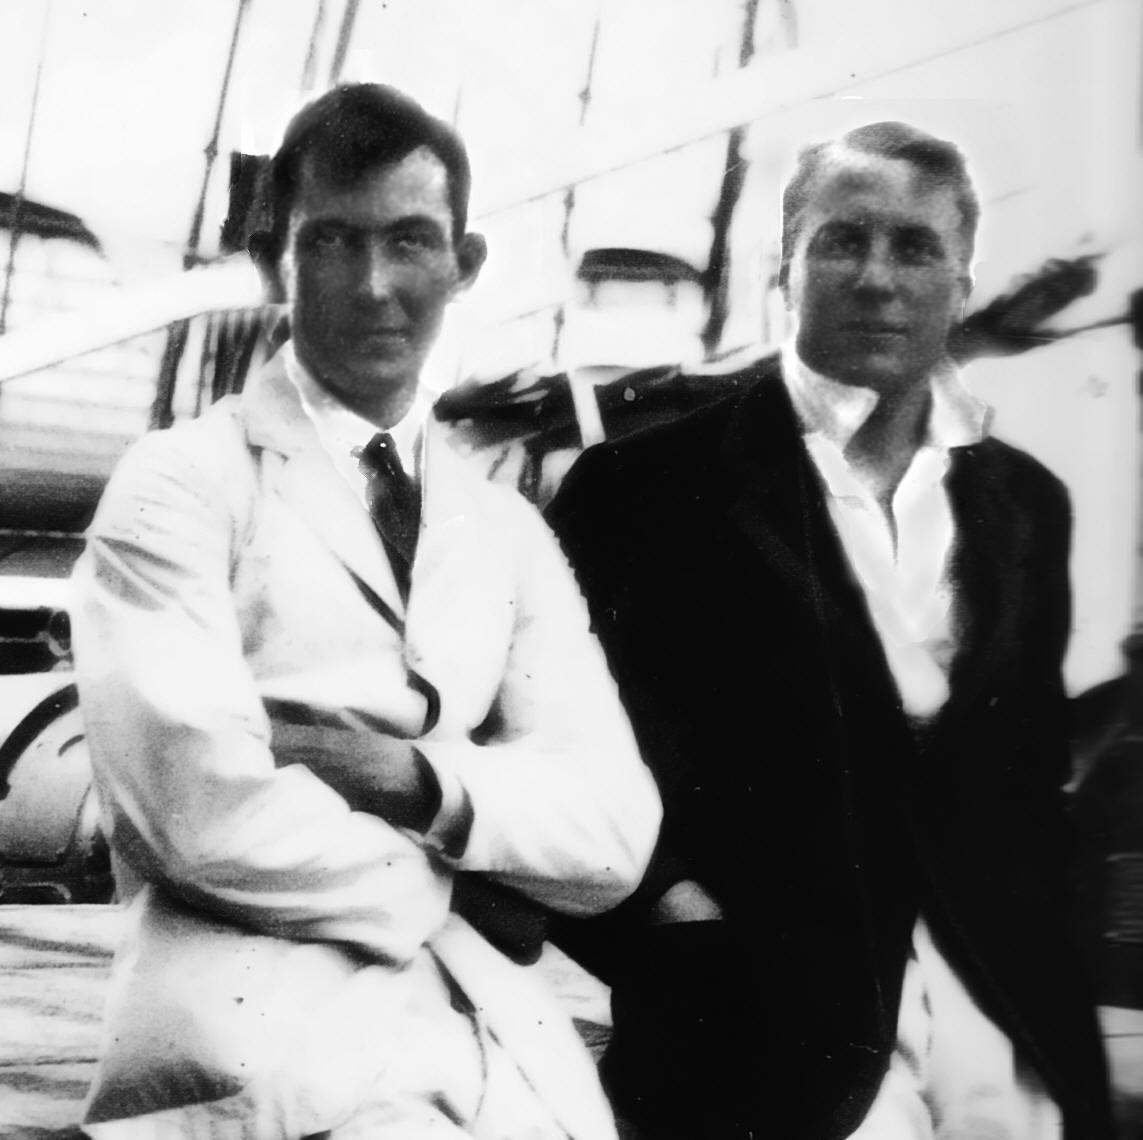 Who Conquered Mount Everest First? Part.I | Elixir Of ... George Mallory And Andrew Irvine